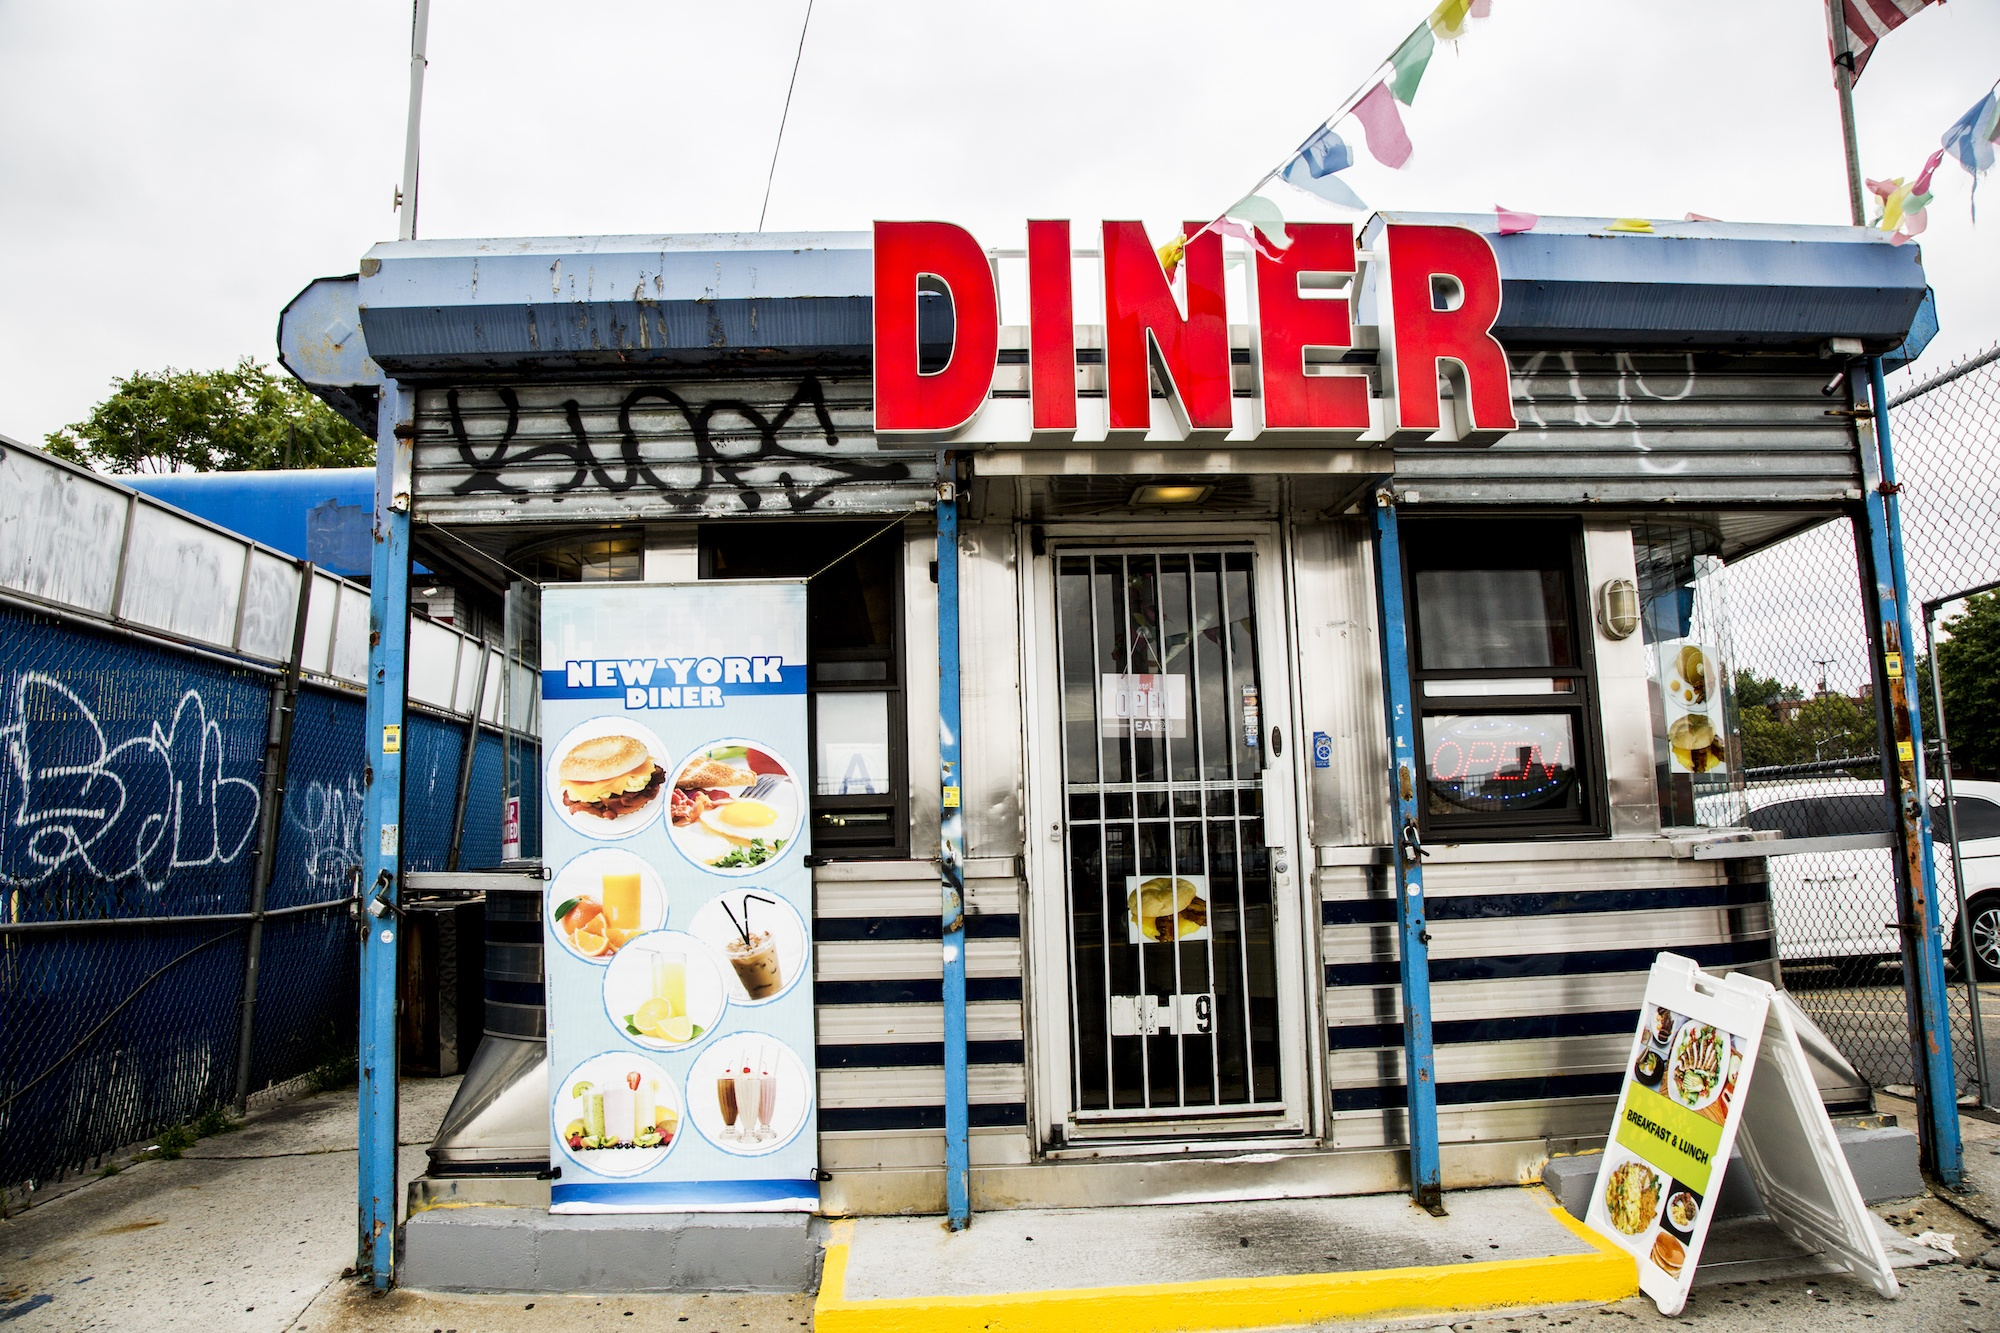 Diners of NYC, Riley Arthur, Diner photography